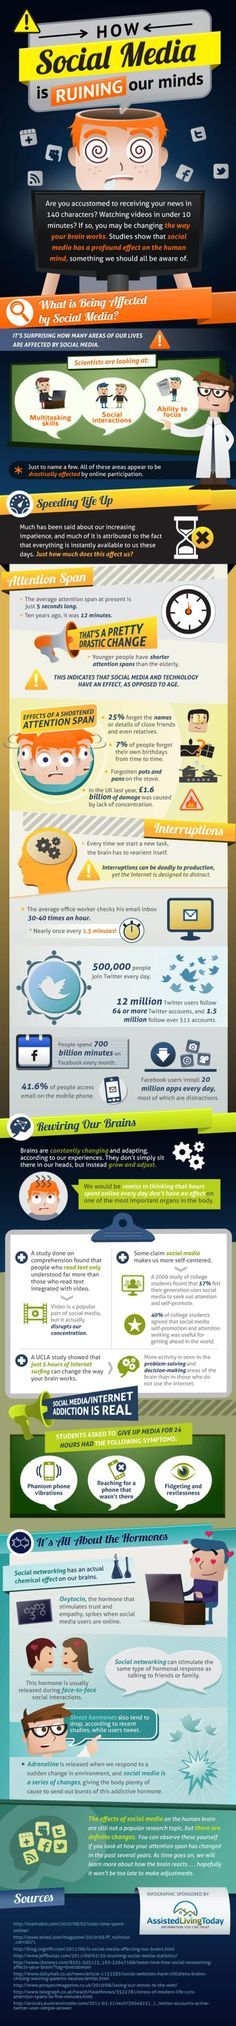 How social media is ruining our minds...